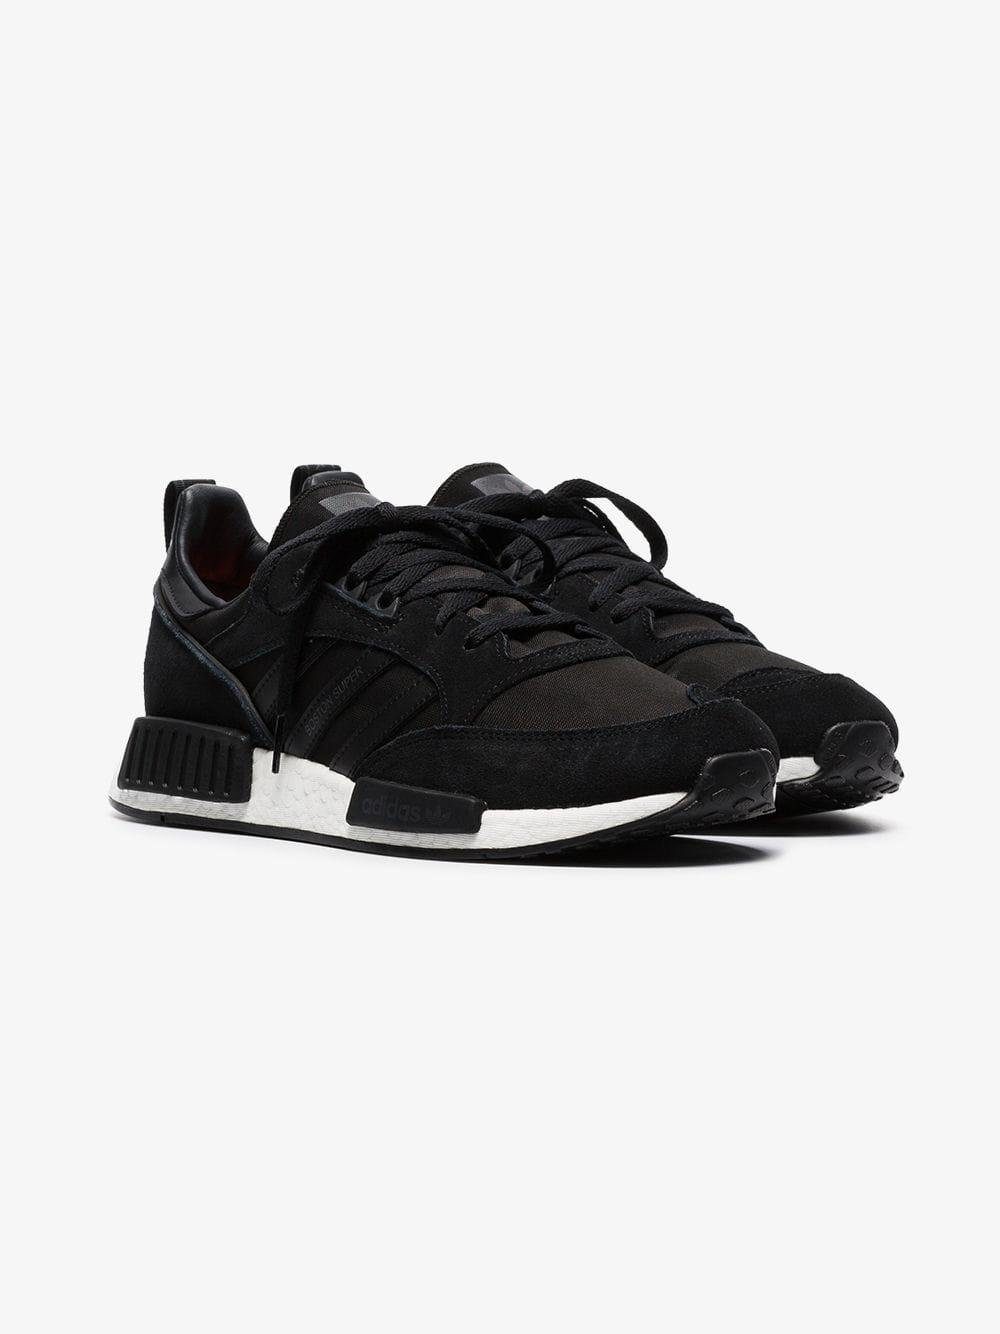 5830f39322a744 Lyst - adidas Black Boston R1 Suede Sneakers in Black for Men